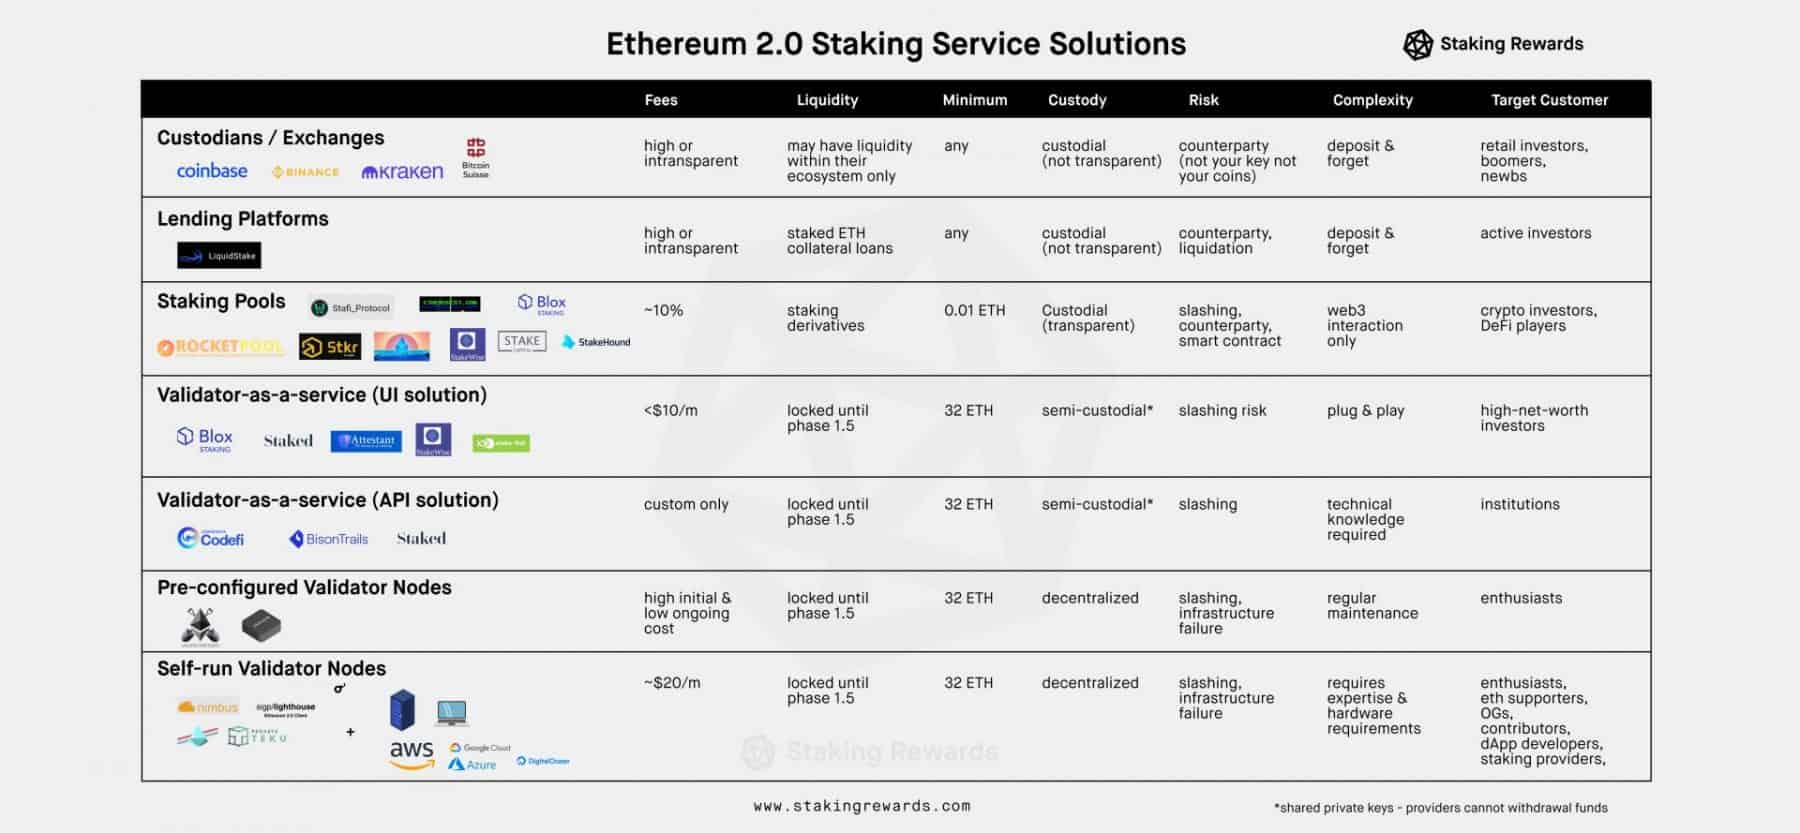 Ehtereum Staking Service Solutions